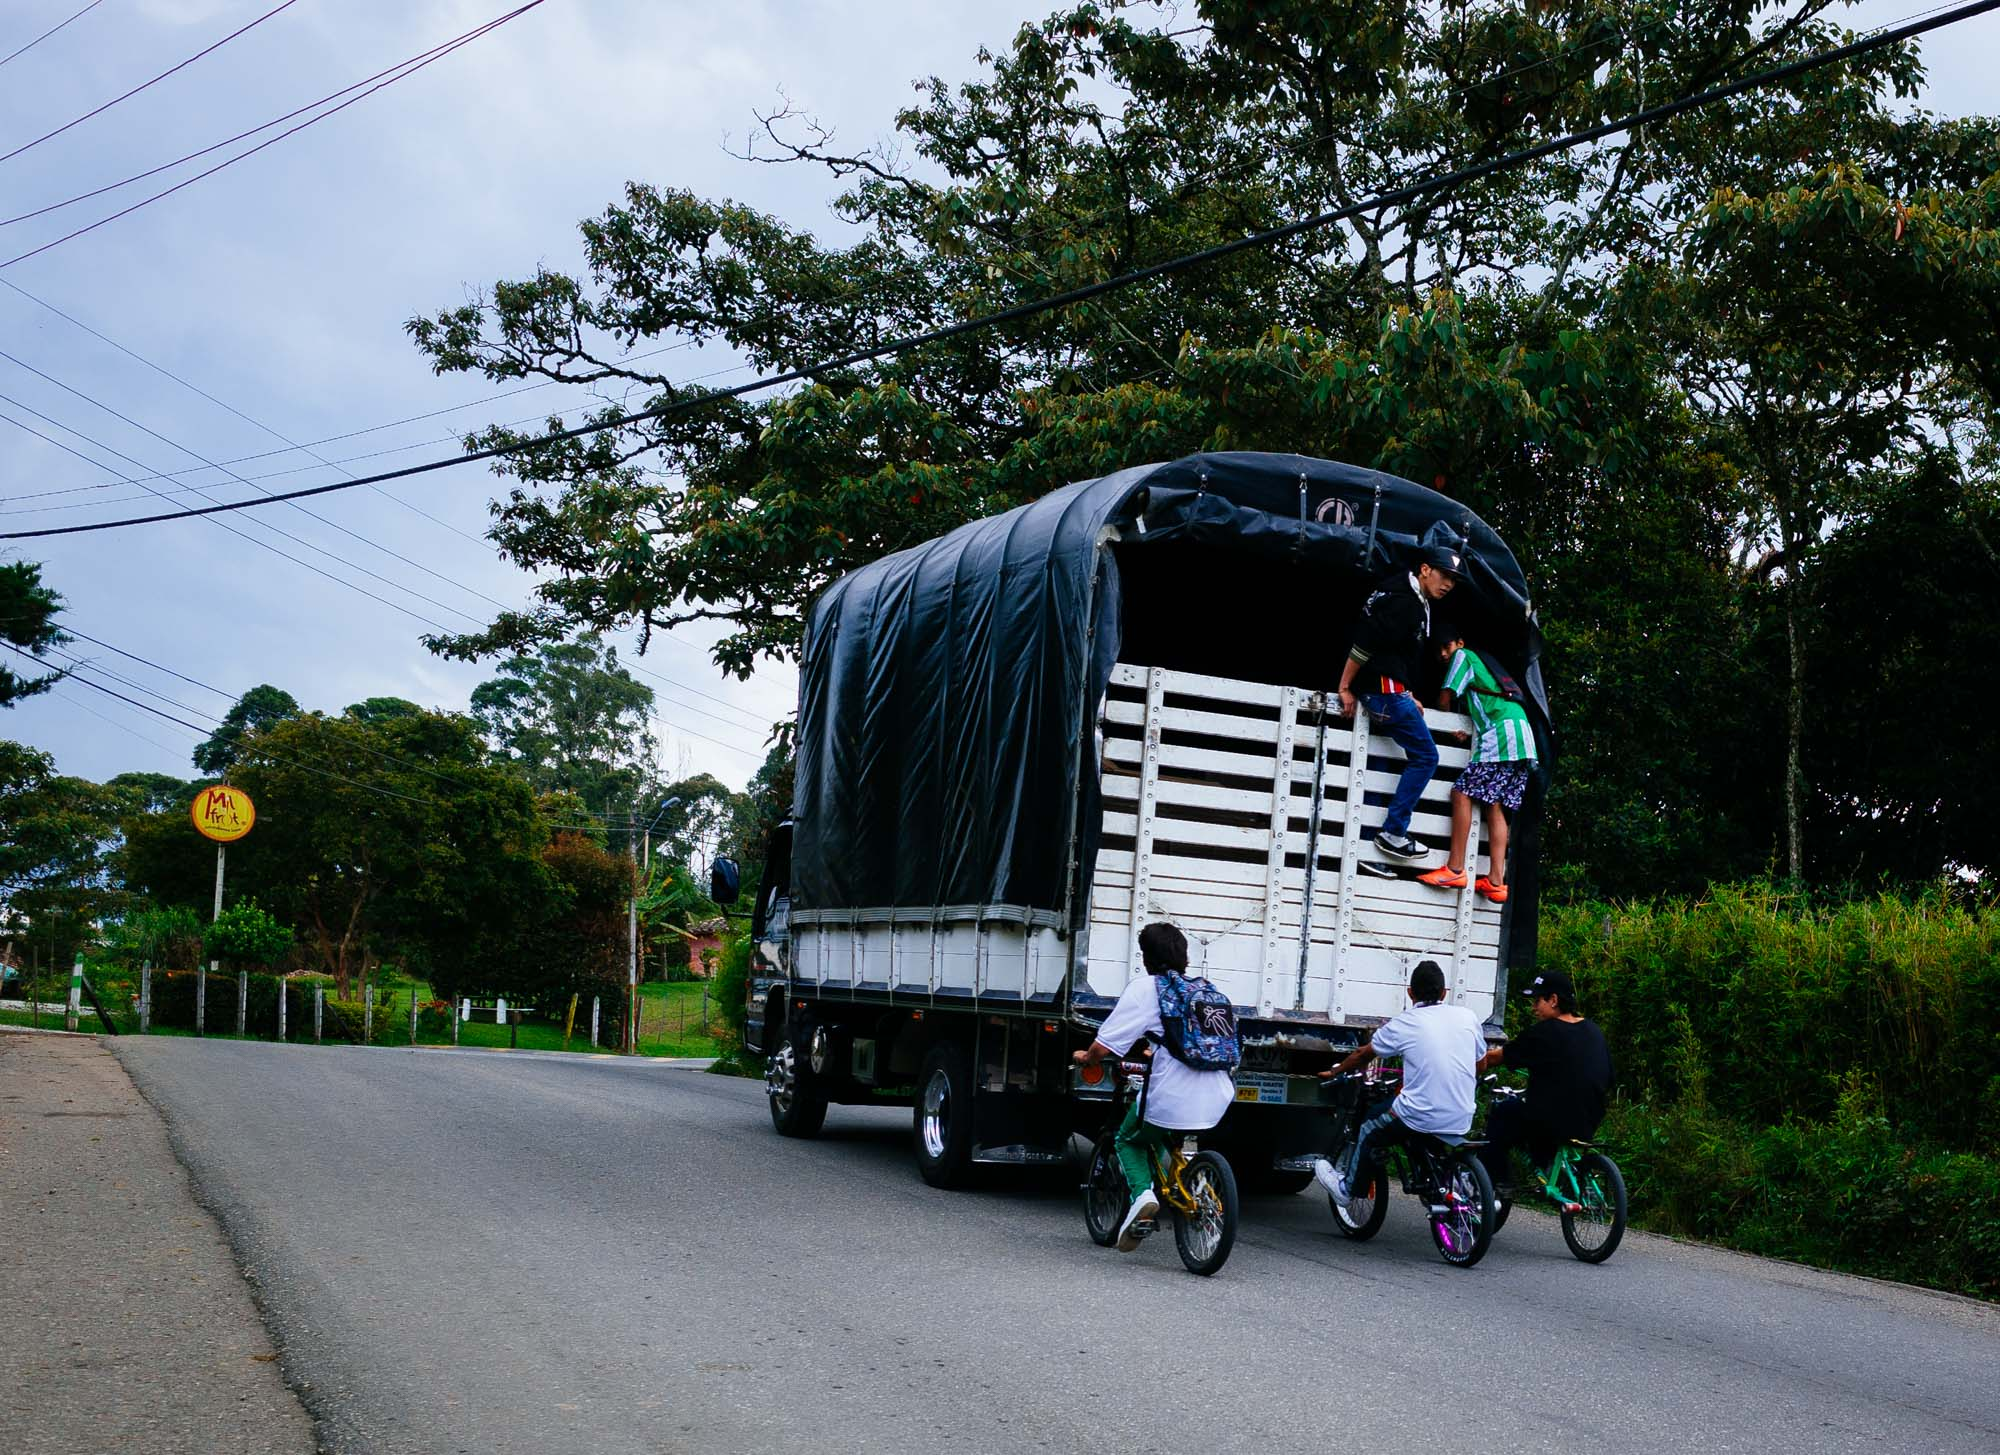 to-be-determined-photo-rhetoric-cycling-in-colombia-1033.jpg